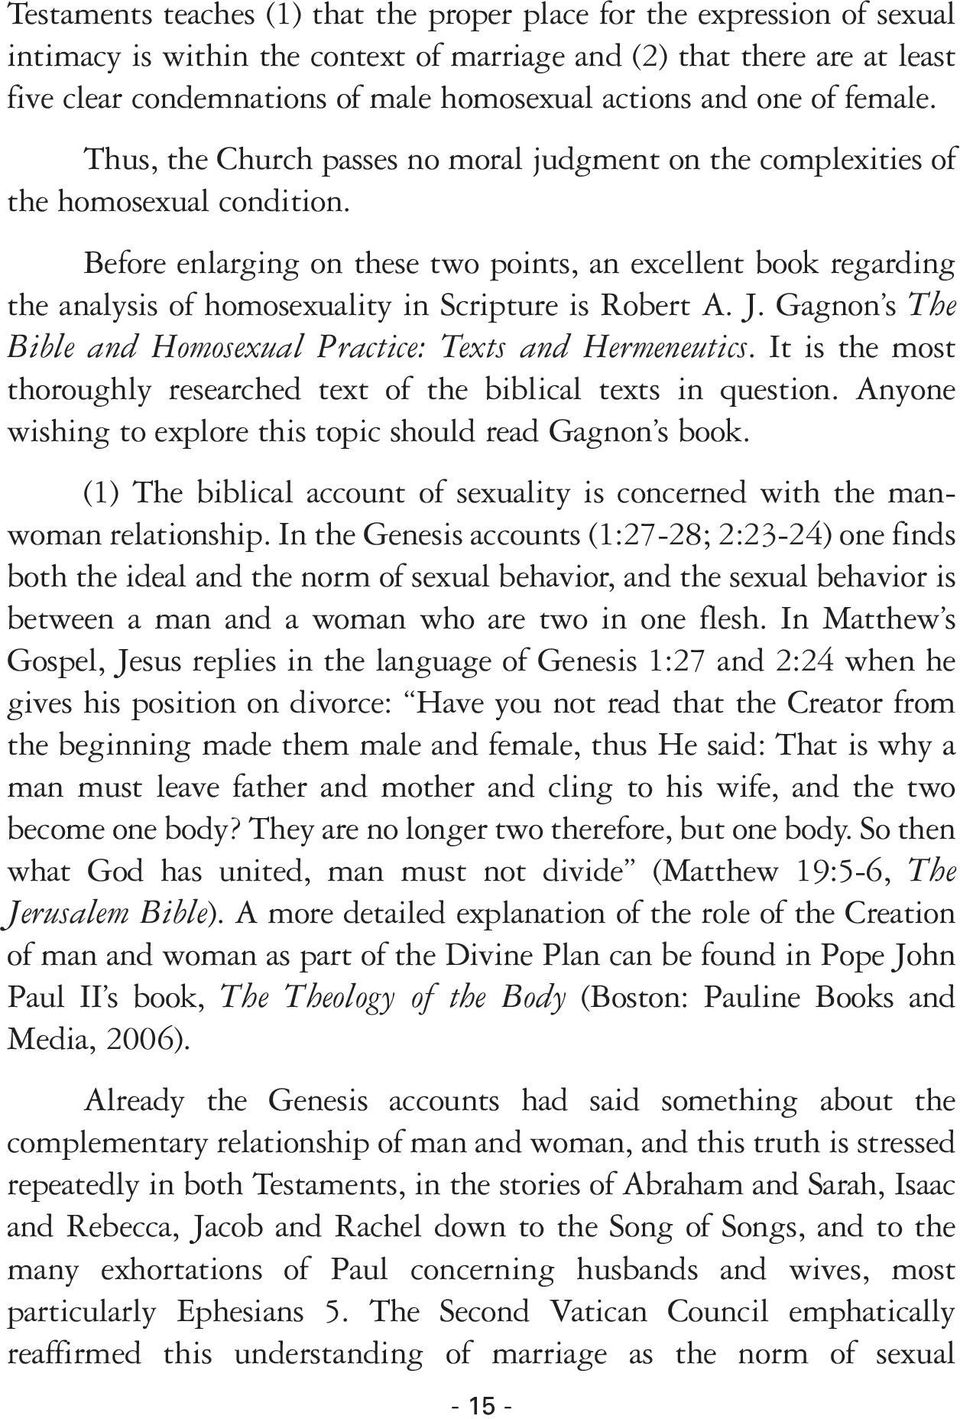 Before enlarging on these two points, an excellent book regarding the analysis of homosexuality in Scripture is Robert A. J. Gagnon s The Bible and Homosexual Practice: Texts and Hermeneutics.